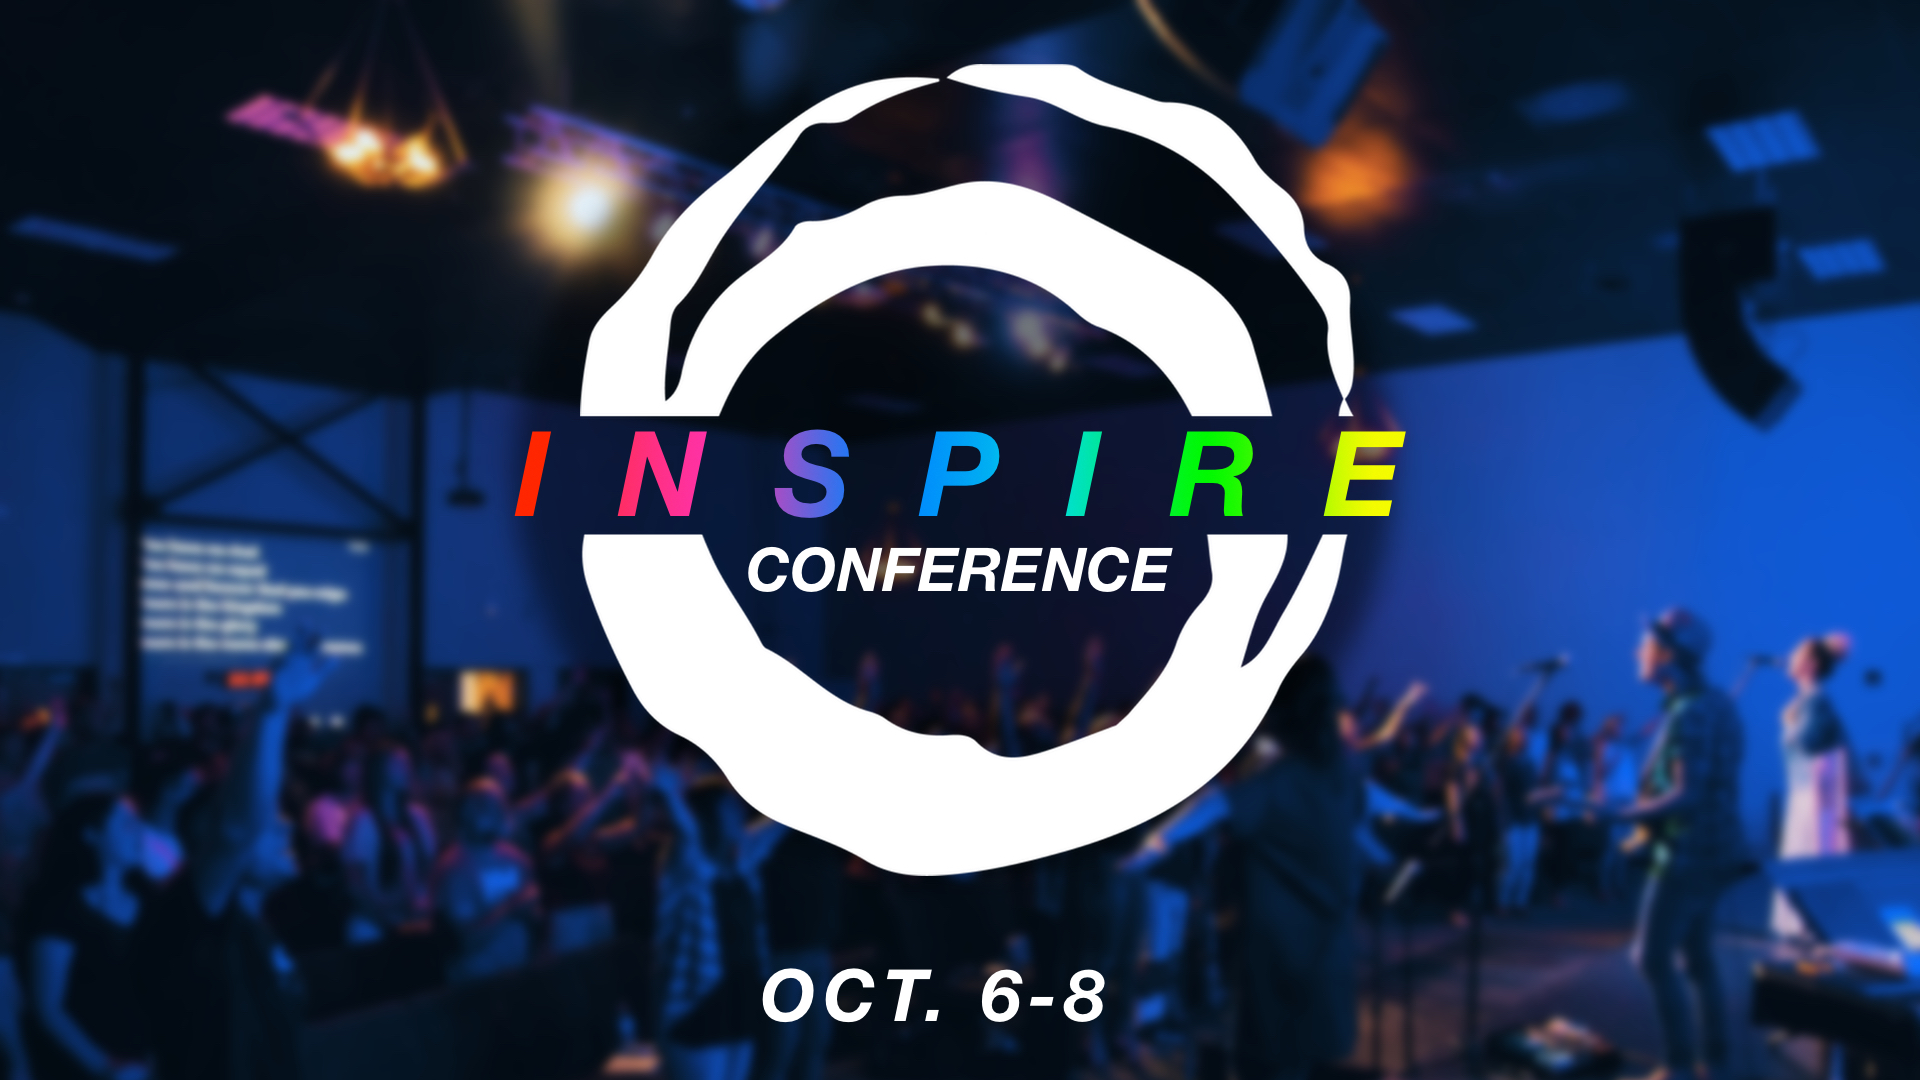 INSPIRE CONFERENCE NVC.jpg